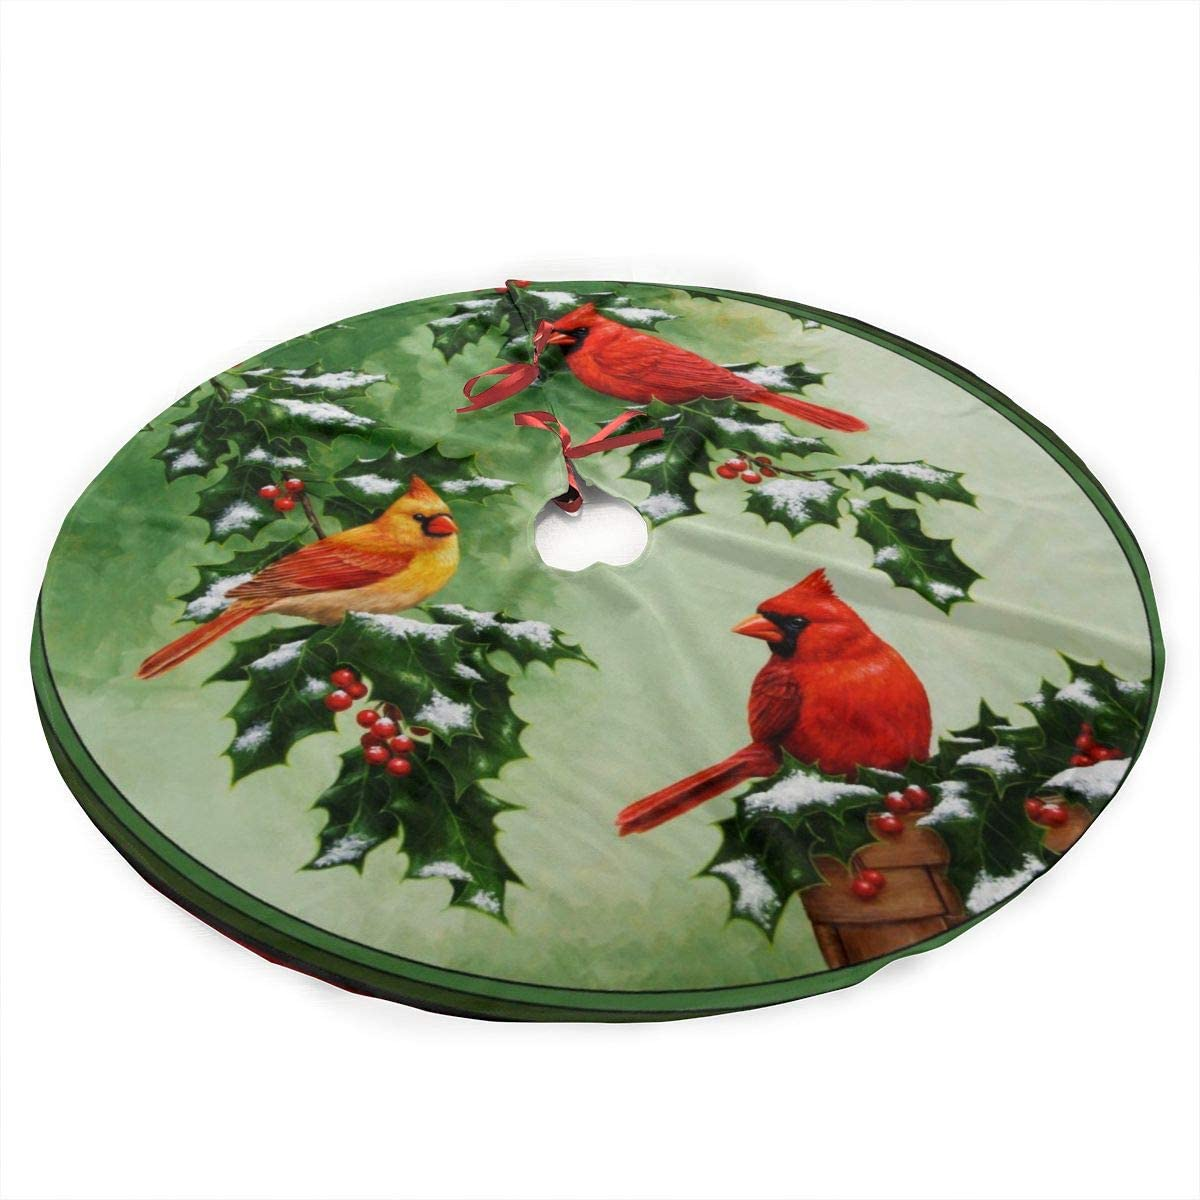 ALASFC Christmas Tree Skirt Popular products 35.5 and Hol Northern Cardinals Time sale Inch